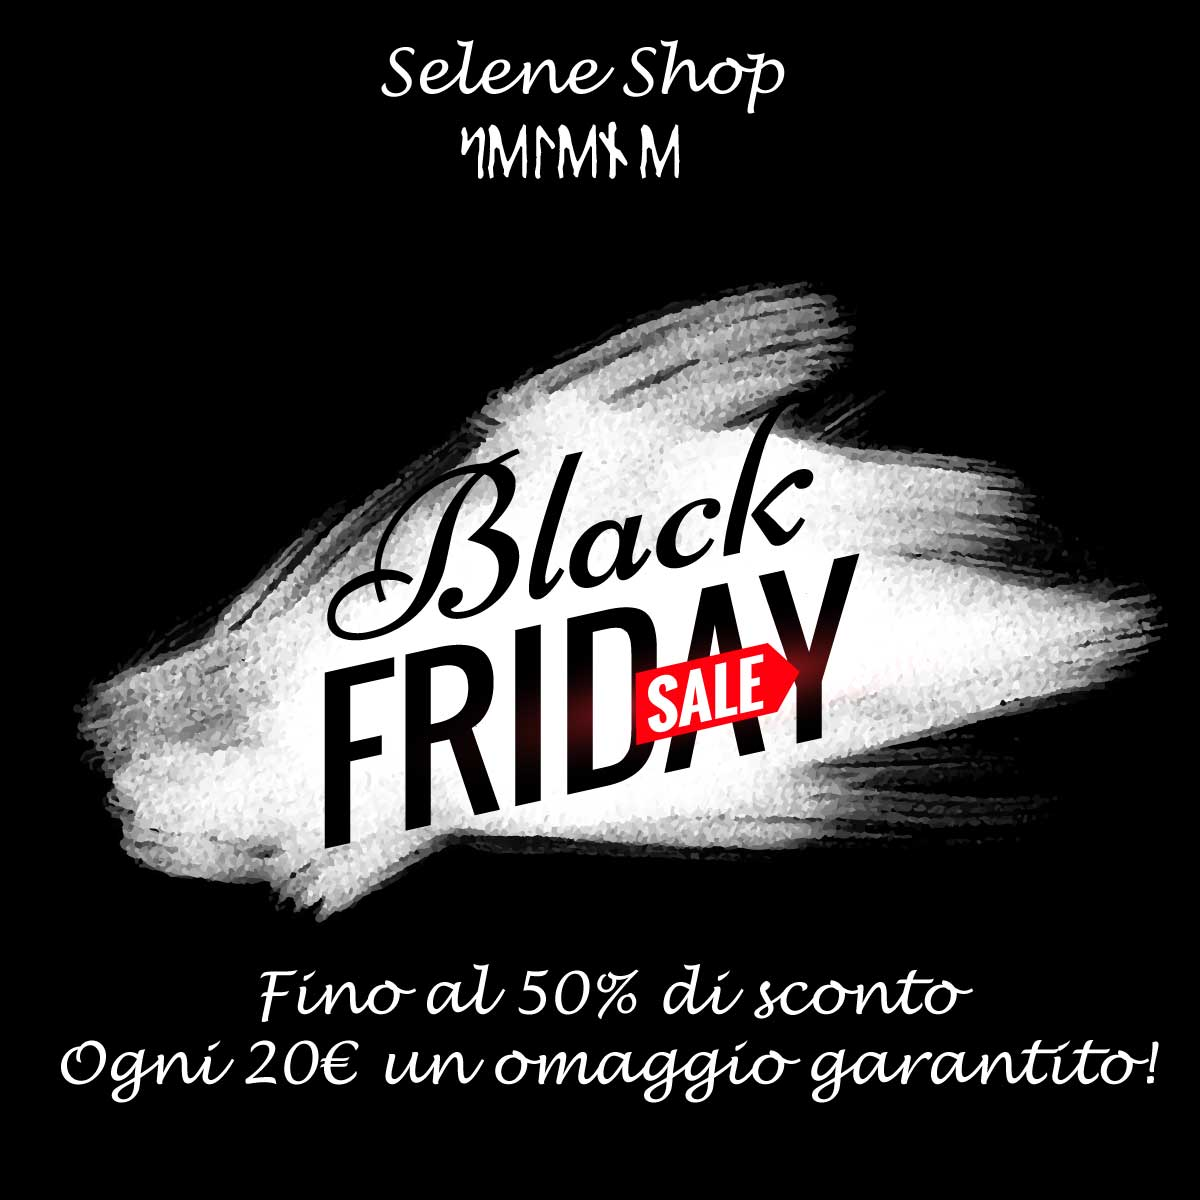 Black Friday esoterico 2018